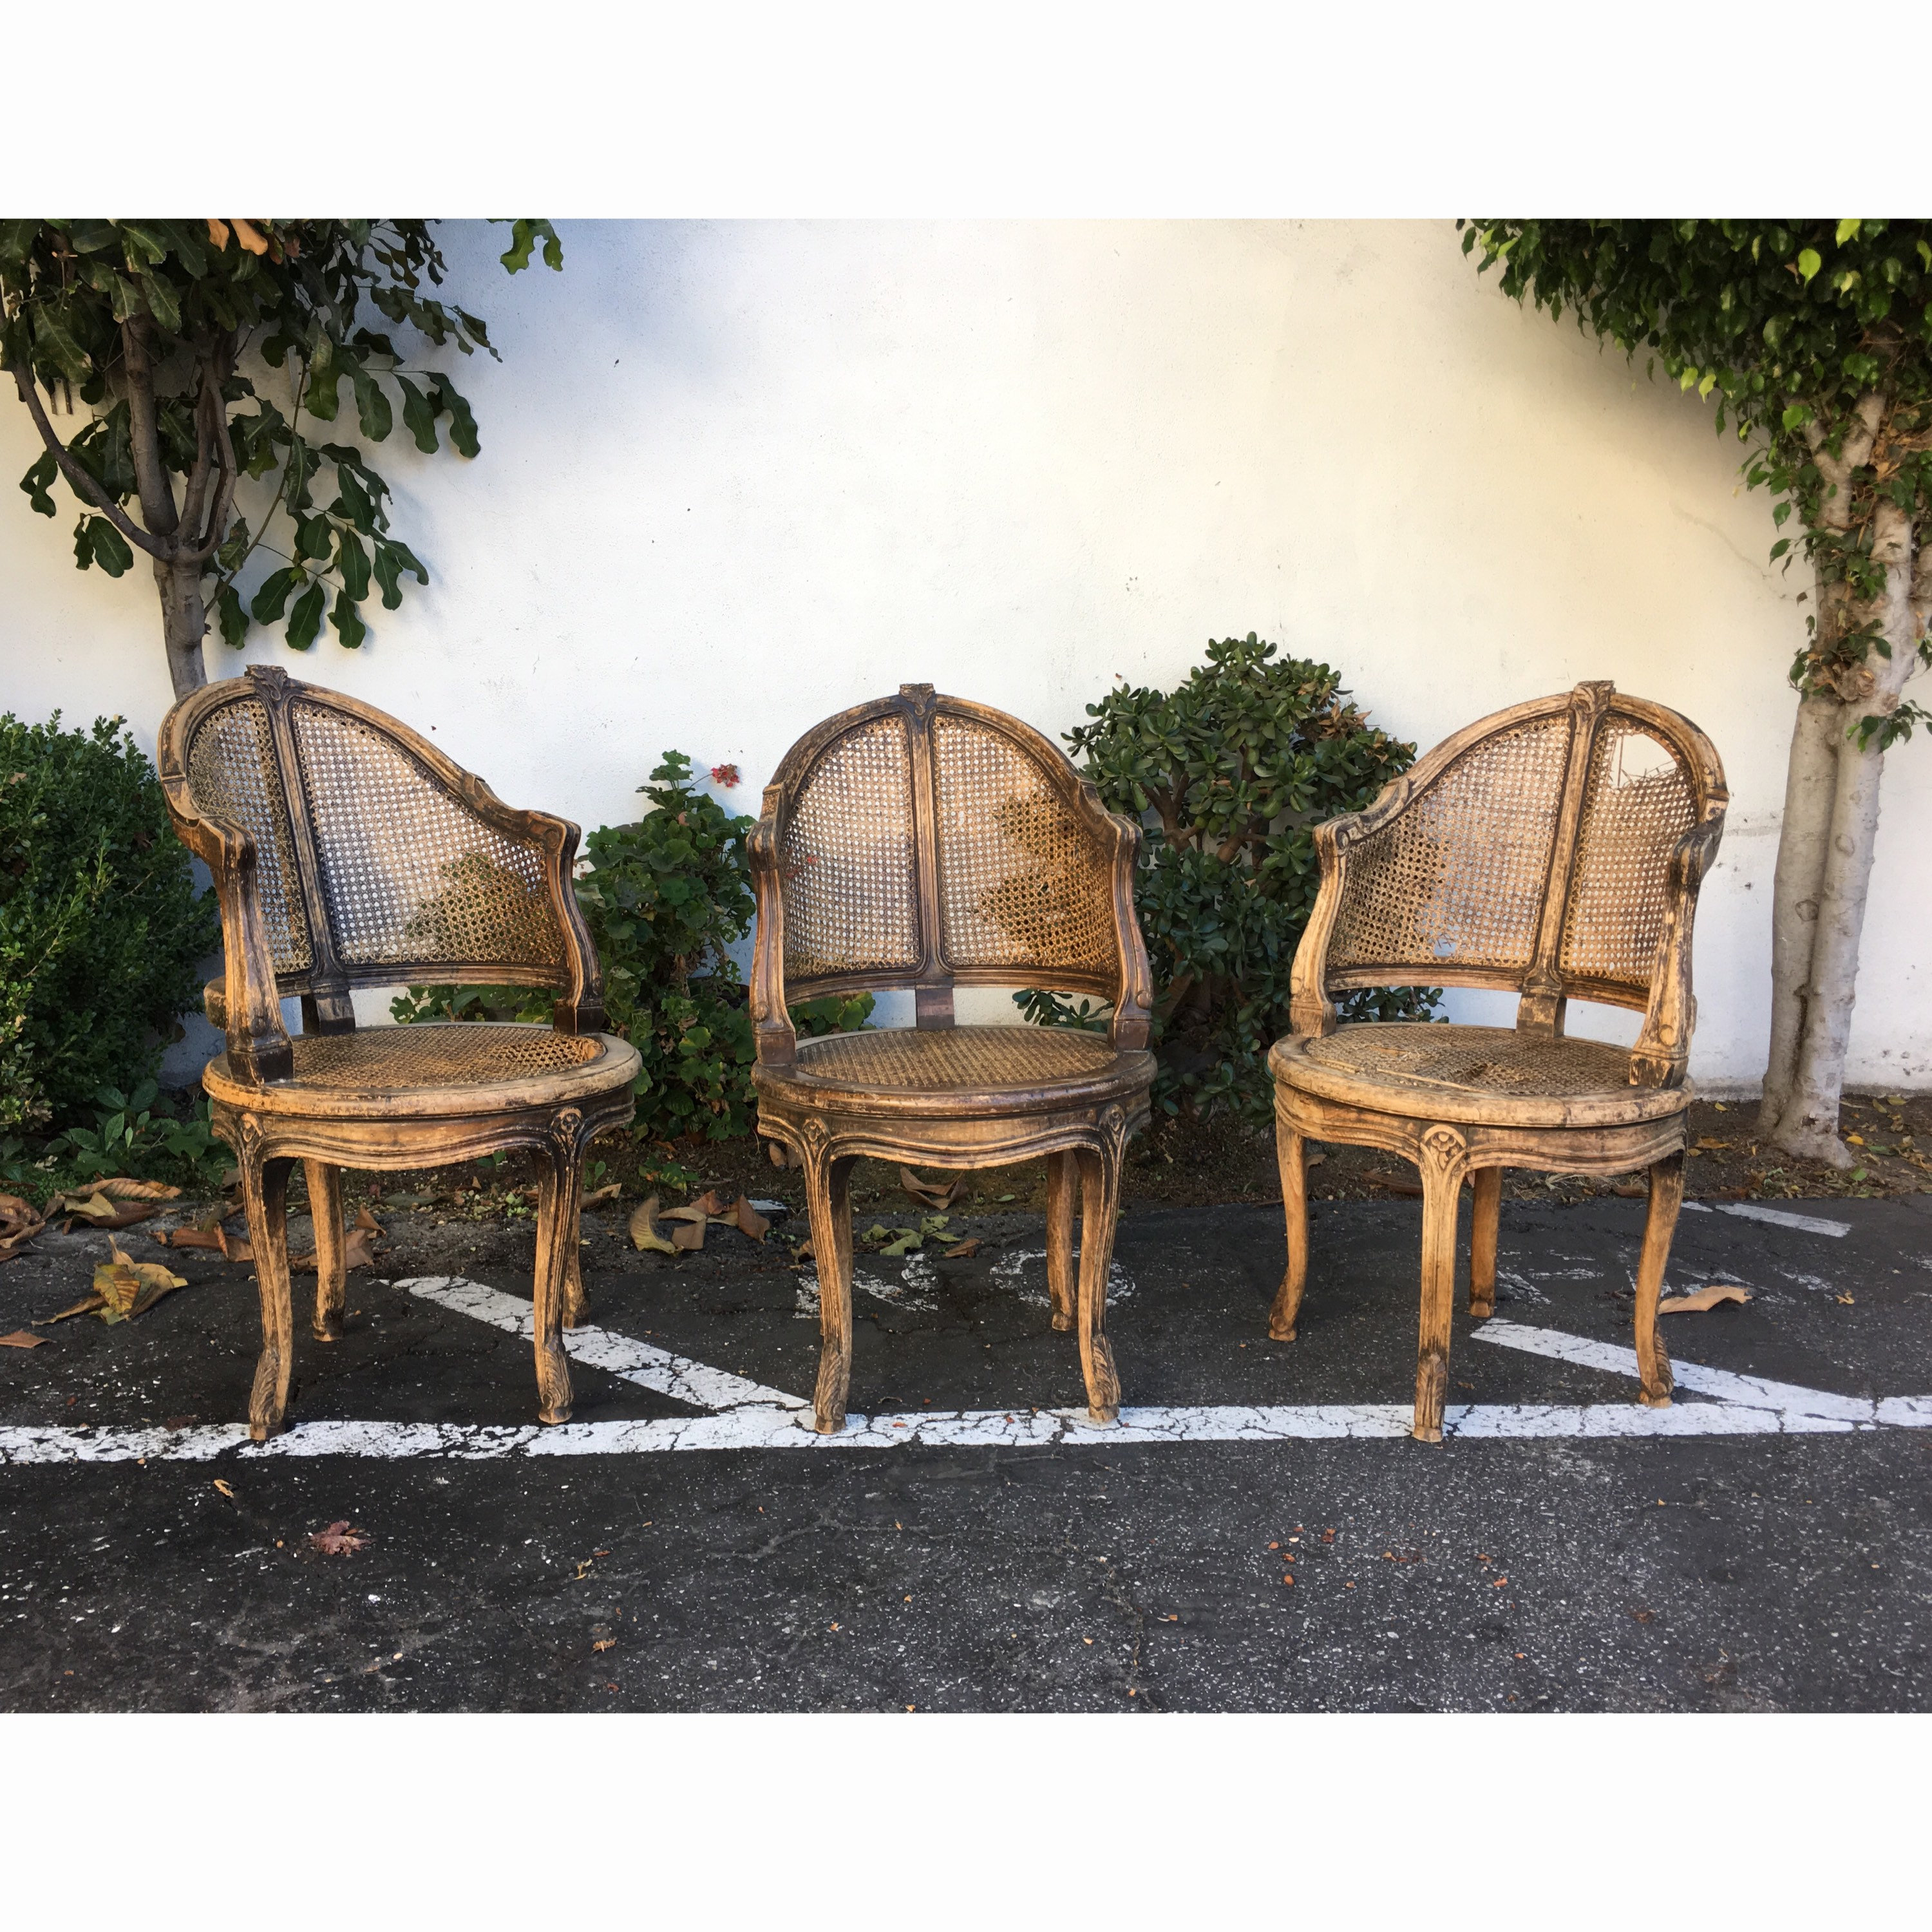 Strange 3 French Country Louis Xv Style Swivel Vanity Chair Cane Back Boudoir Seat Walnut Floral Engraved Set Of 3 Antique Chairs Spiritservingveterans Wood Chair Design Ideas Spiritservingveteransorg